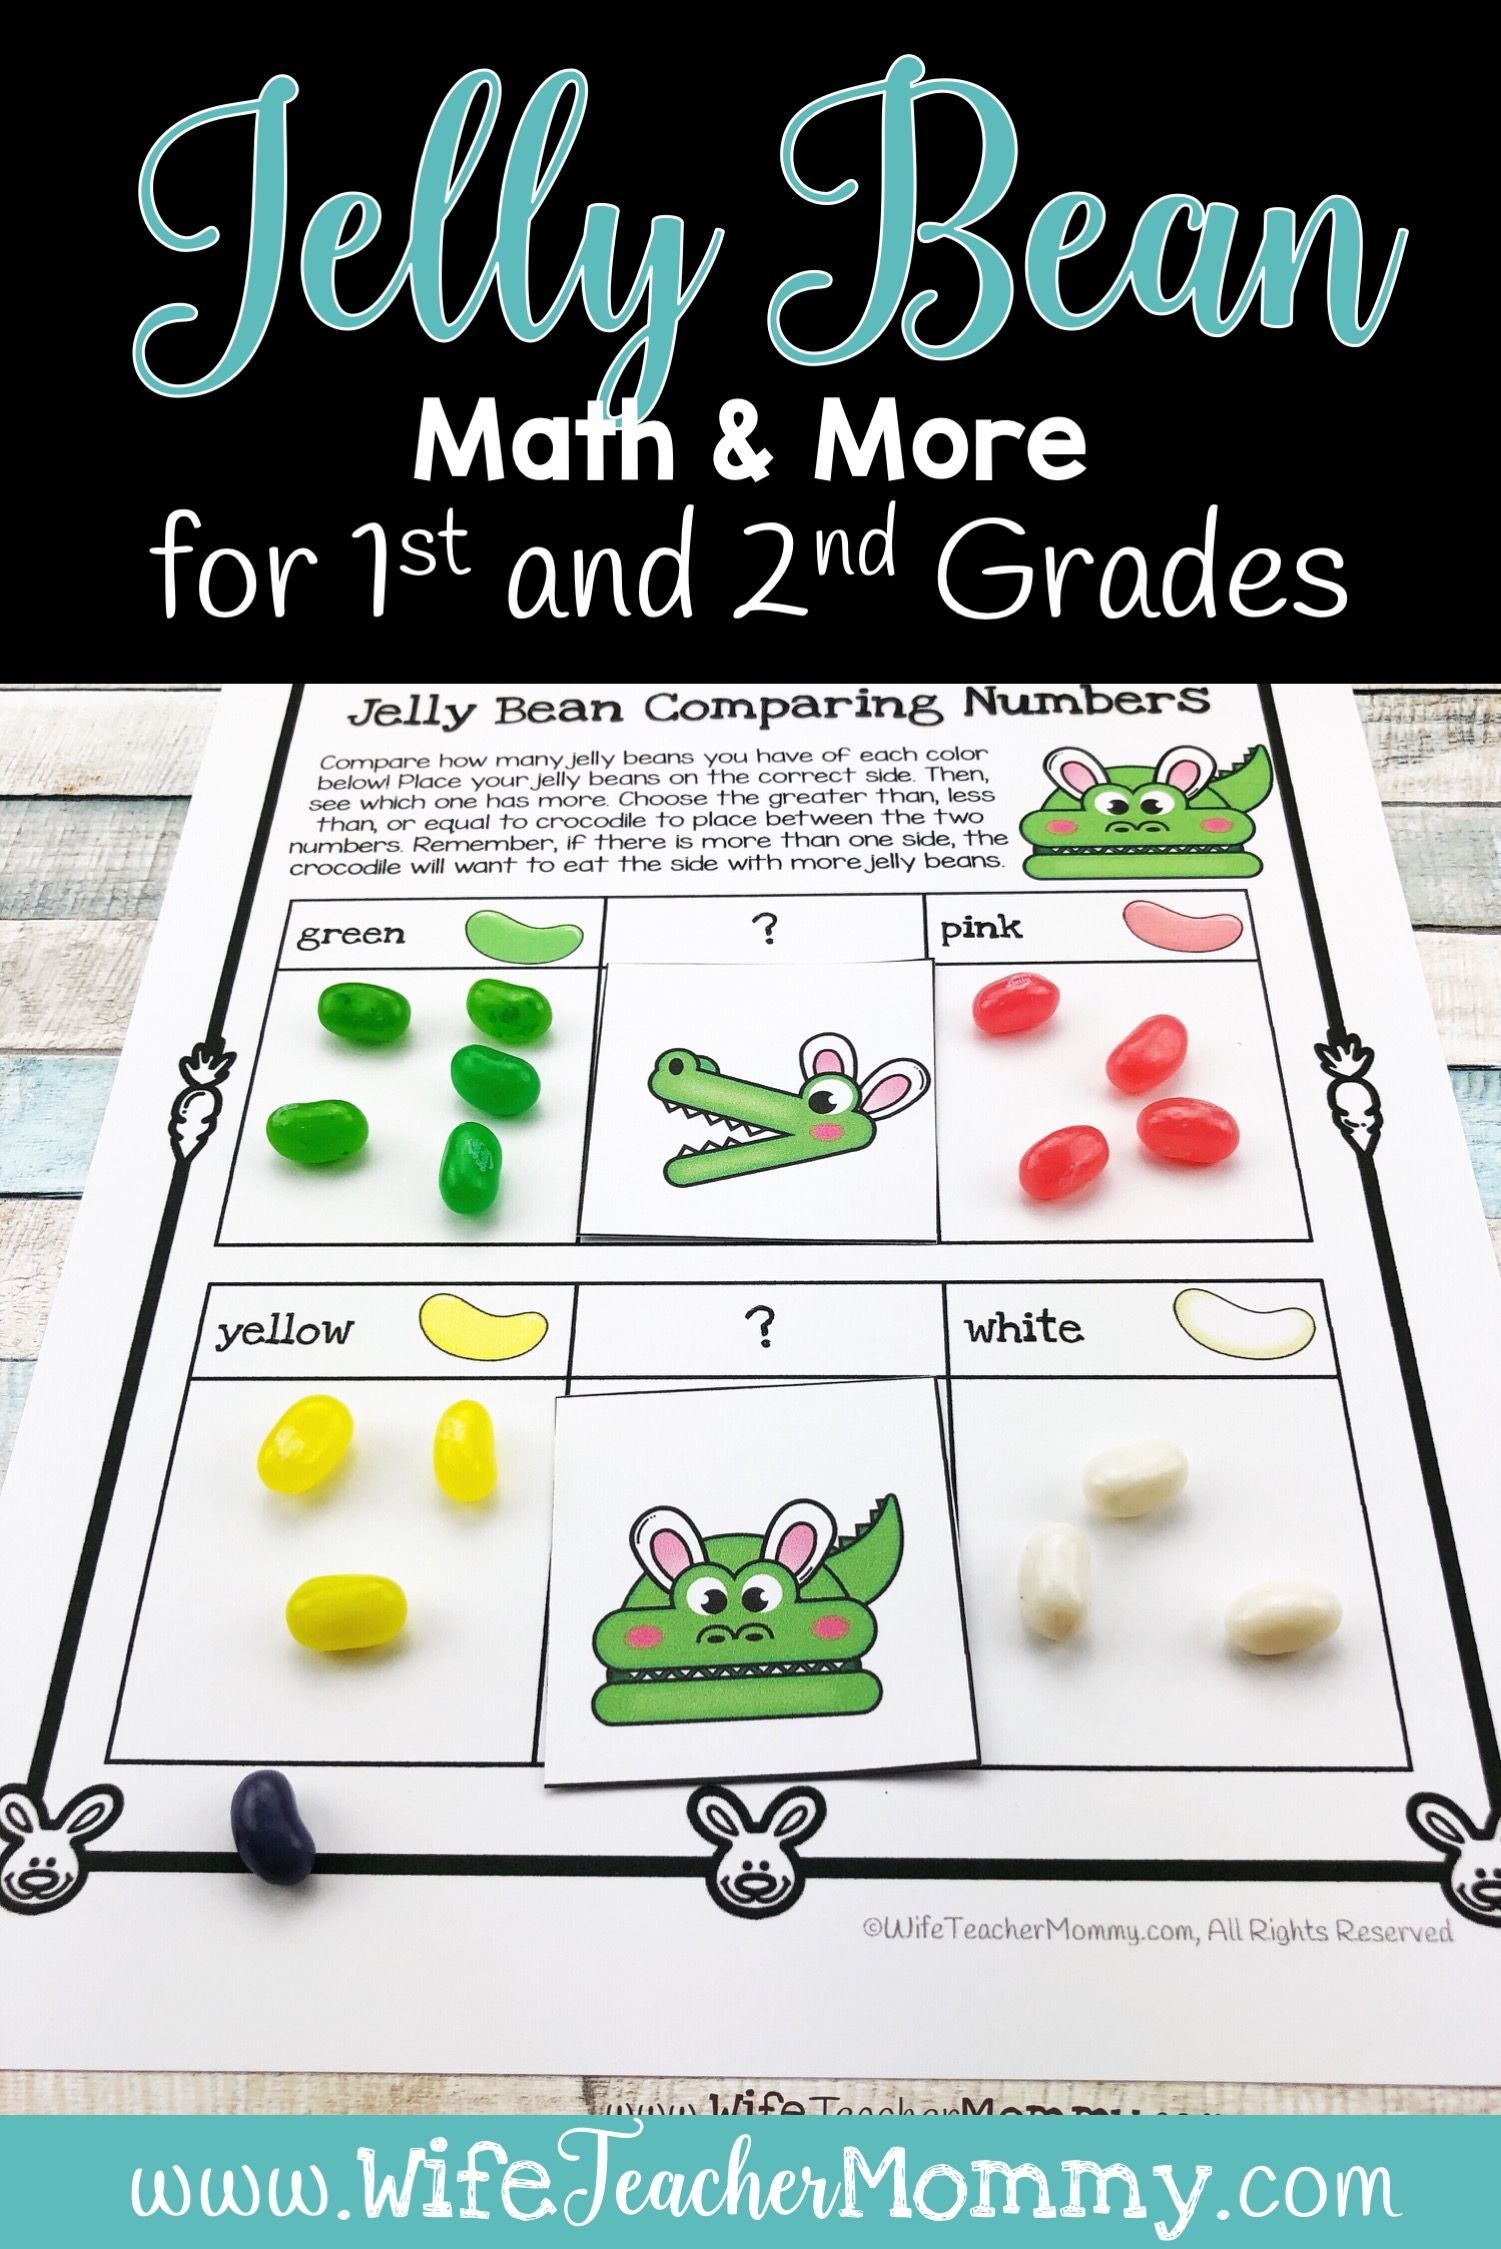 Easter Jelly Bean Math Amp More For 1st And 2nd Grades